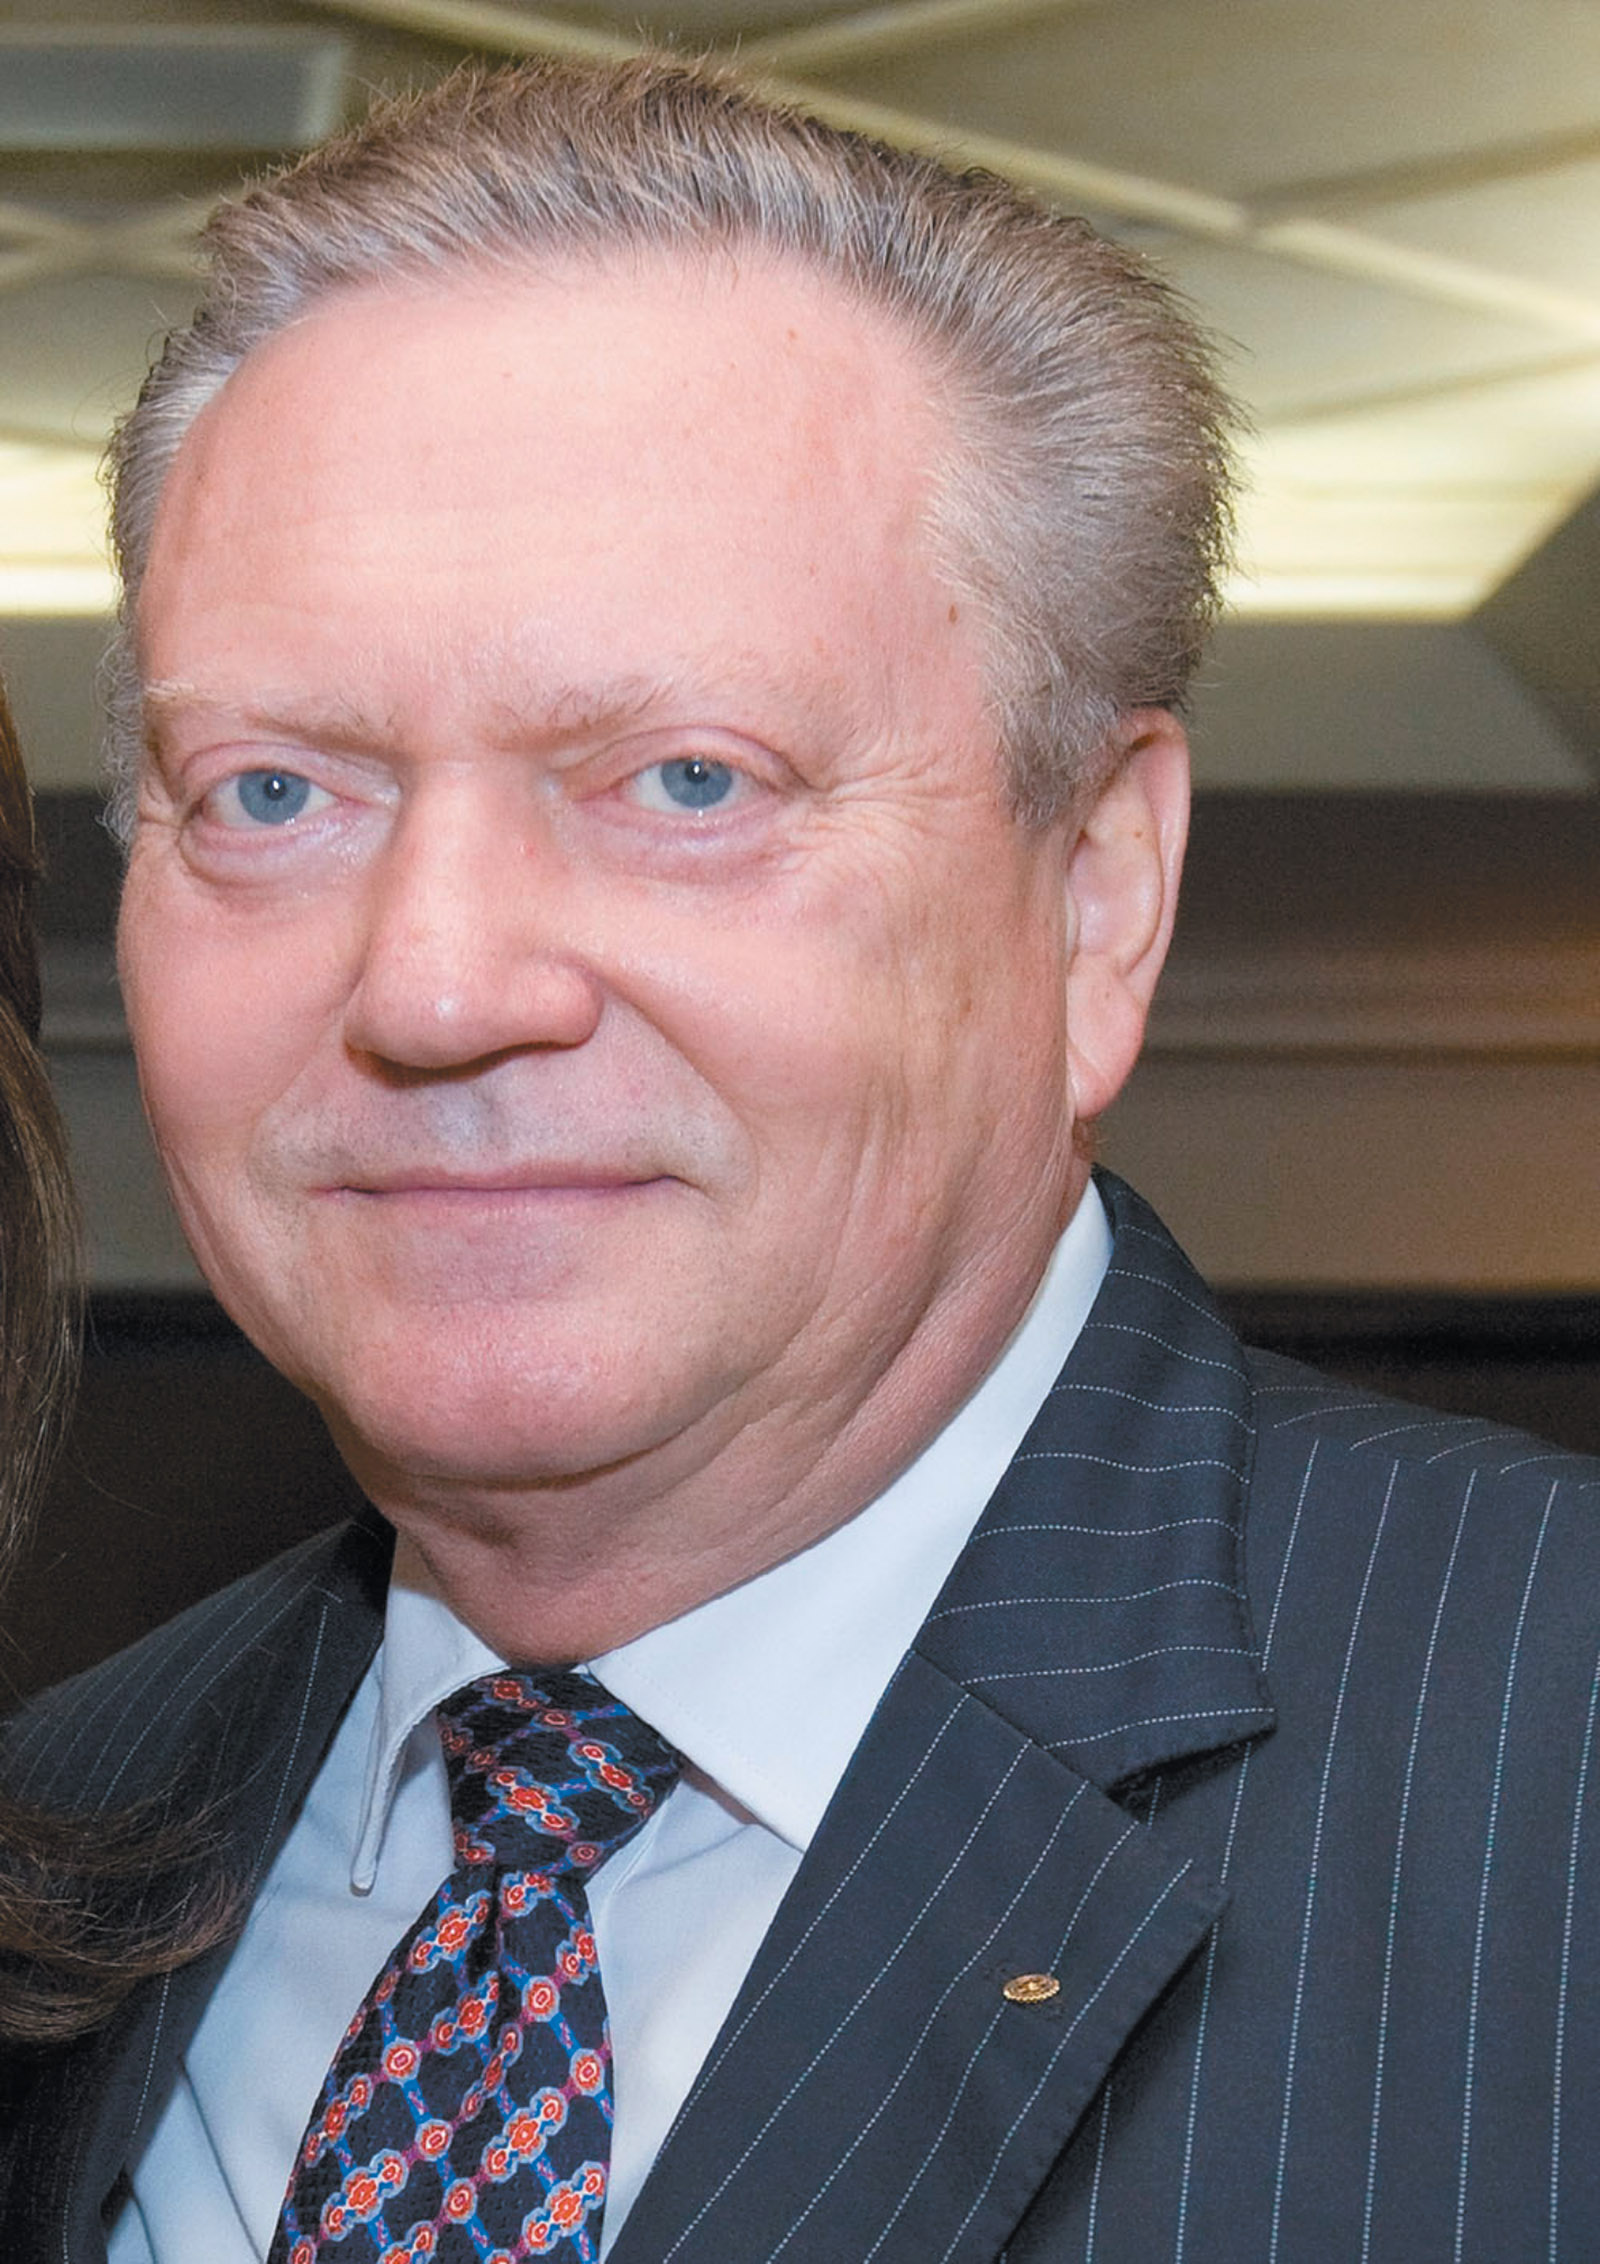 Jürgen Mossack, co-founder of the Panamanian law firm Mossack Fonseca, whose practices of tax evasion were leaked in the Panama Papers, June 2014